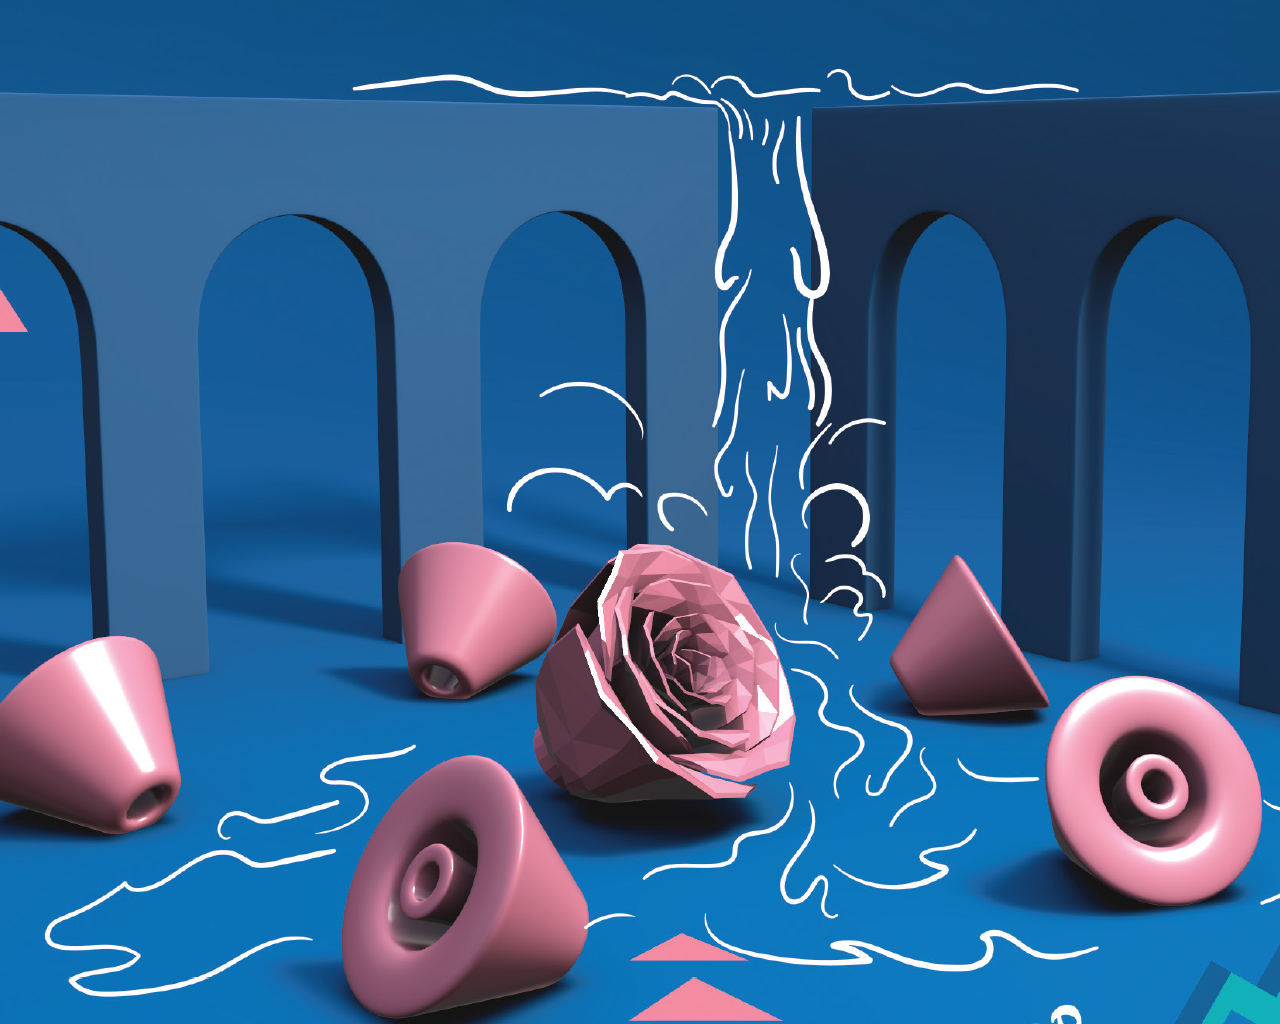 3d illustration with 2d elements of shapes falling down a waterfall